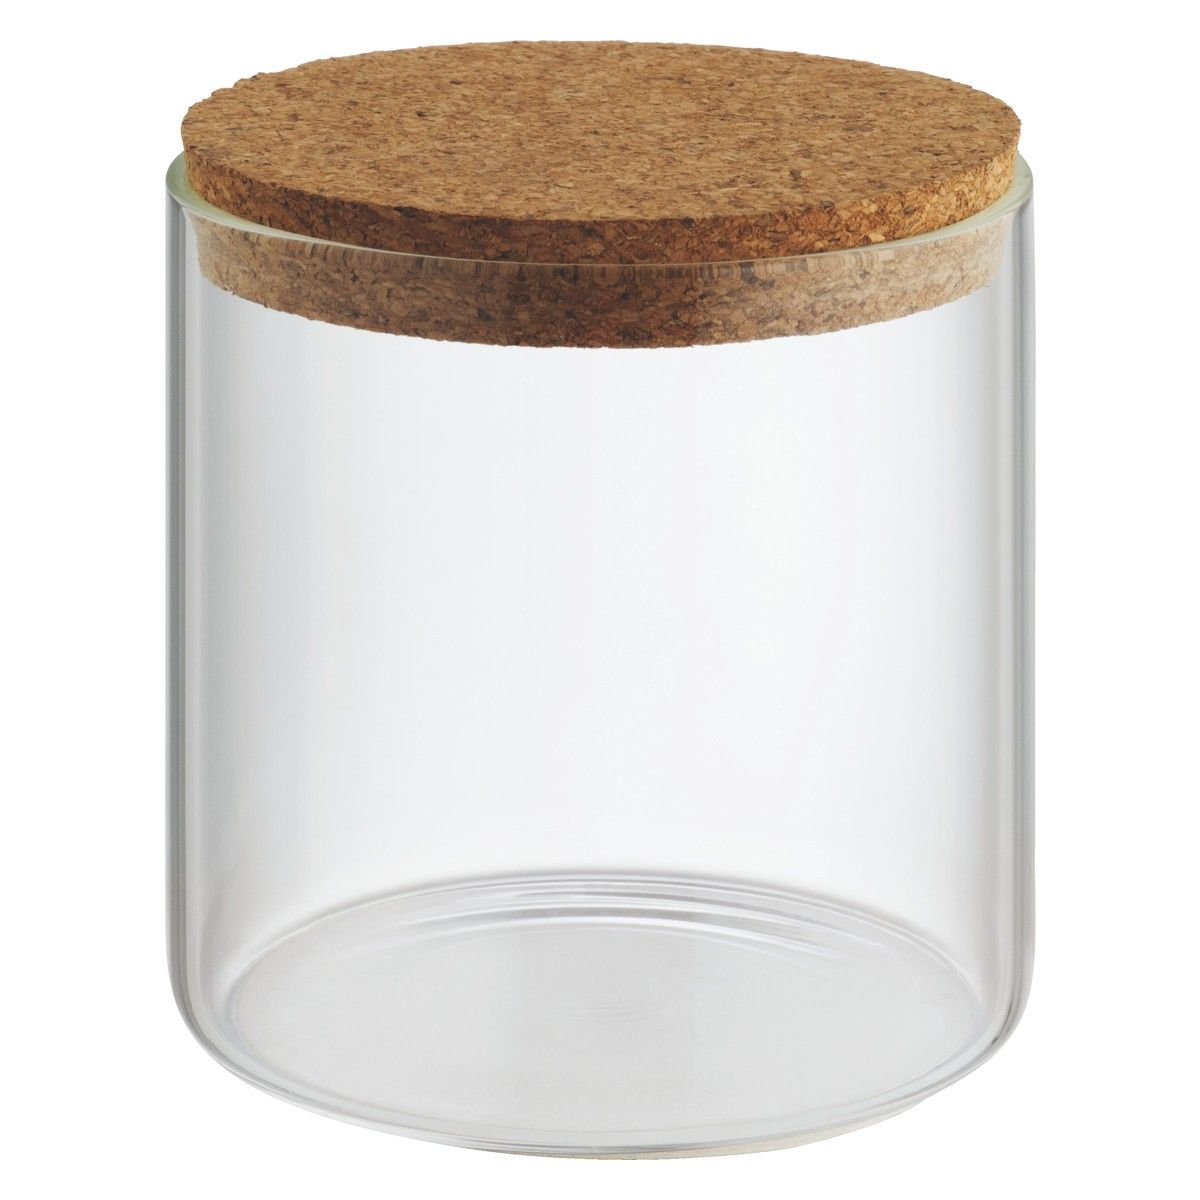 Cork Jar Jadon Small Glass Storage Jar With Cork Lid H12cm